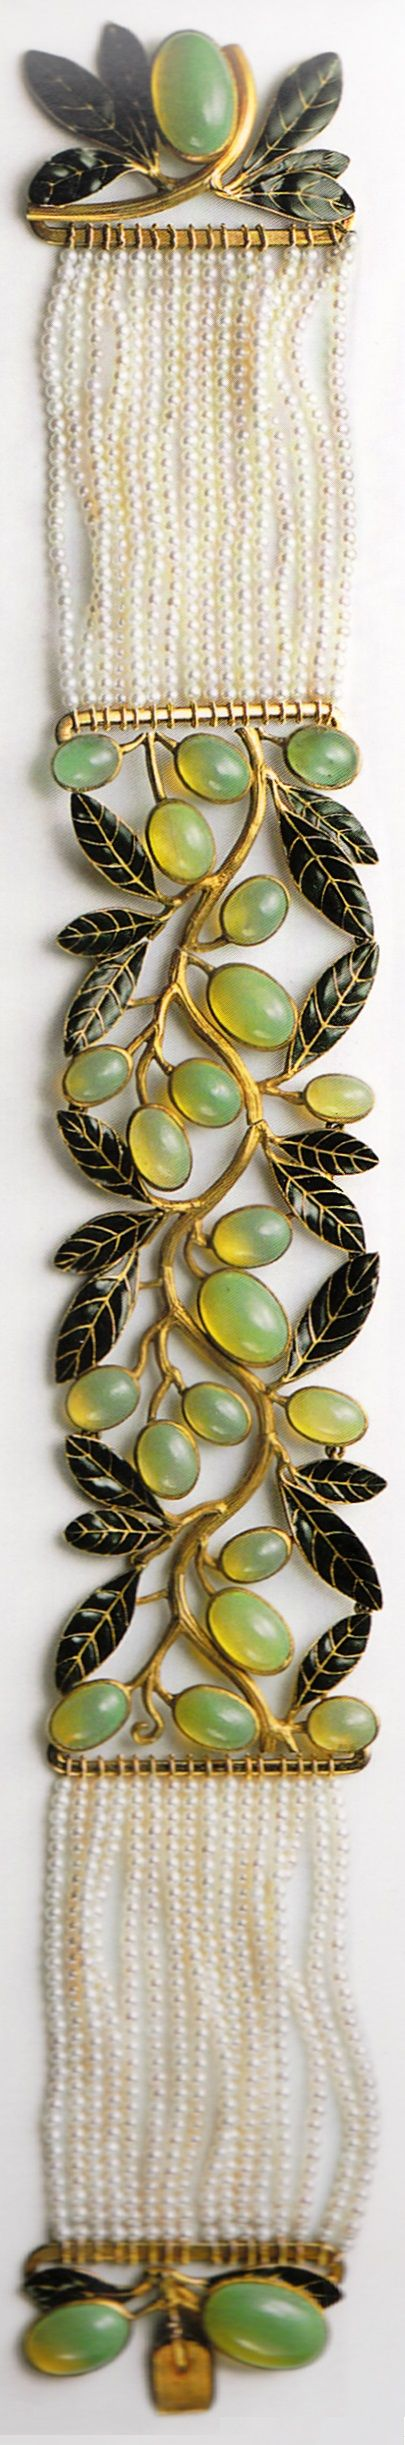 An Art Nouveau gold, enamel, glass and pearl 'Olives' choker, by René Lalique, 1897-99. Collection of Lalique Museum, Hakone, Japan. Source: René Lalique, Exceptional Jewellery 1890 - 1912